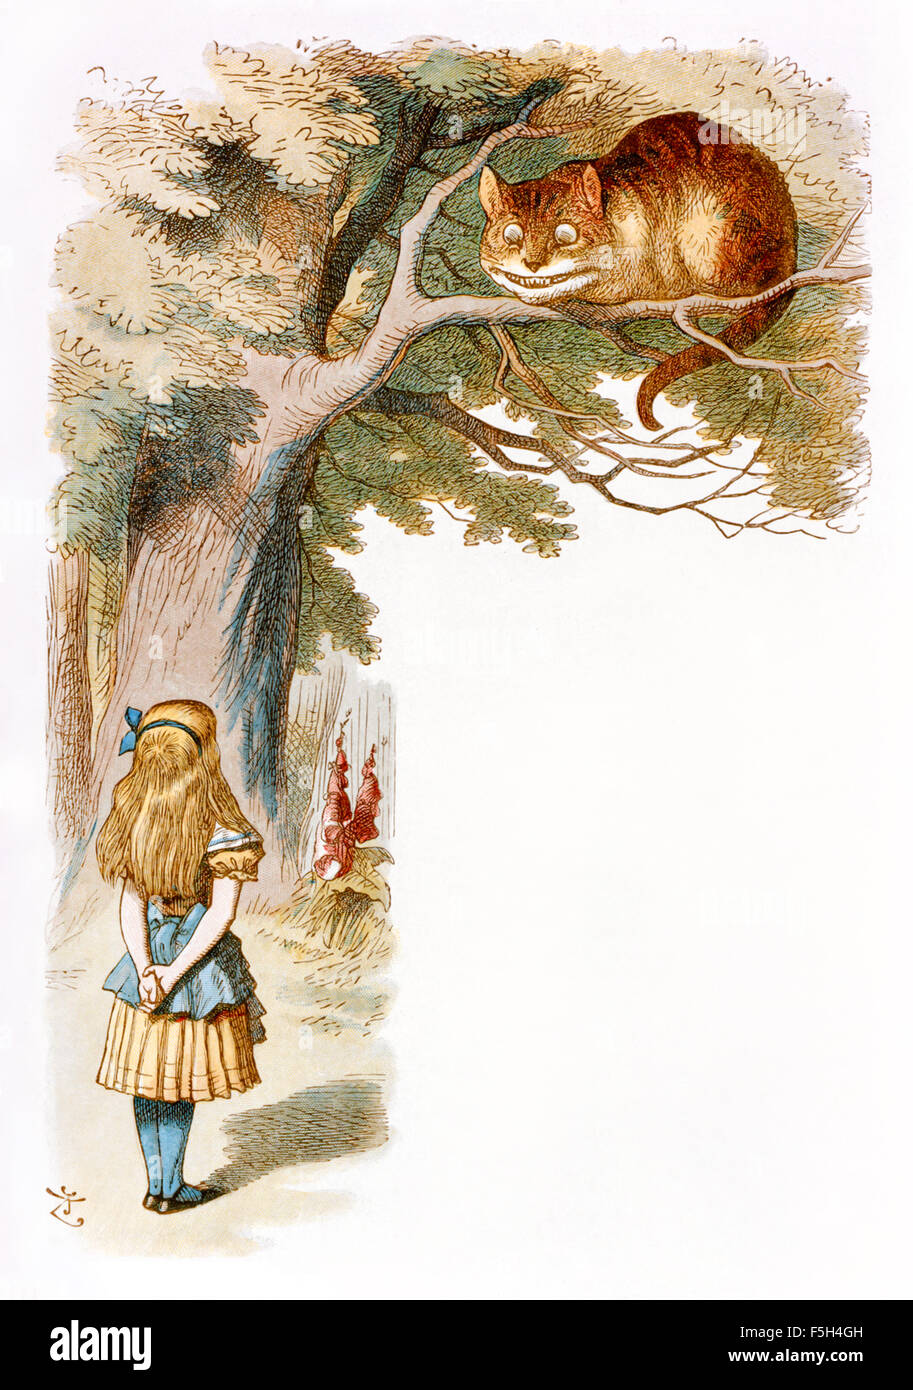 "The Cheshire cat grinned, from 'The Nursery ""Alice'', an shortened adaptation of 'Alice's Adventures - Stock Image"